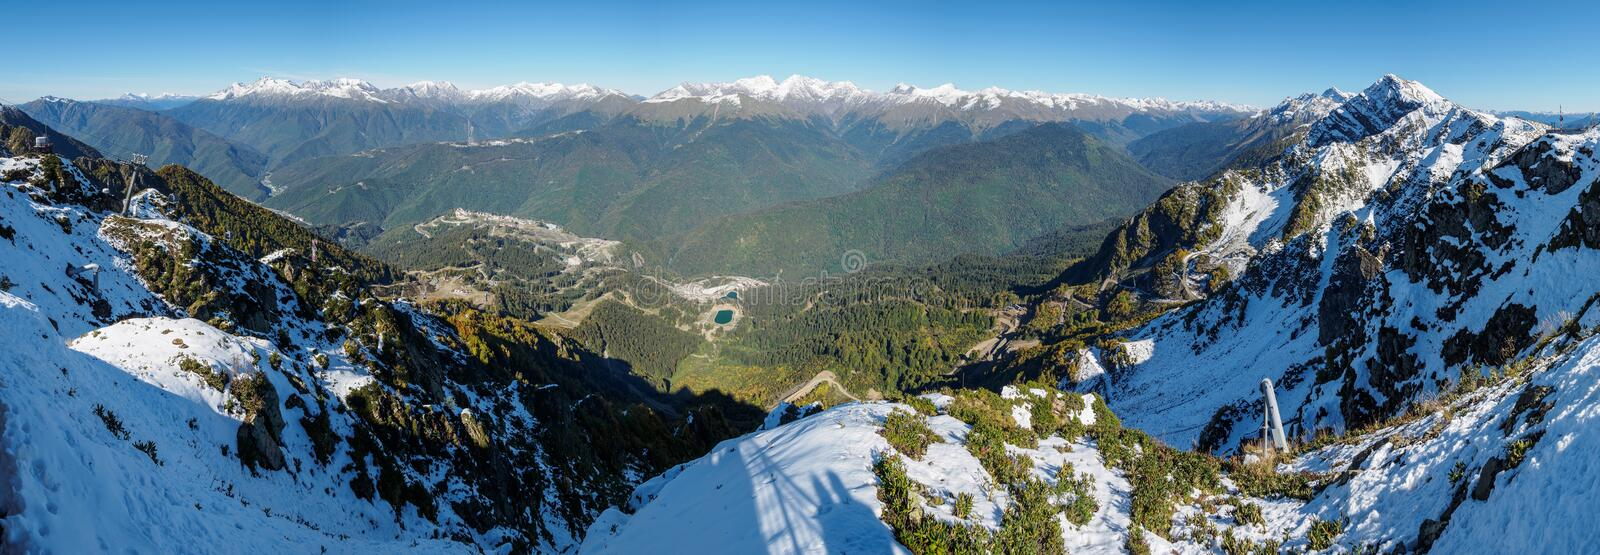 Panoramic view from the top of the Aibga mountain range to the ski resort Rosa Khutor. The valley is surrounded by high mountains royalty free stock images